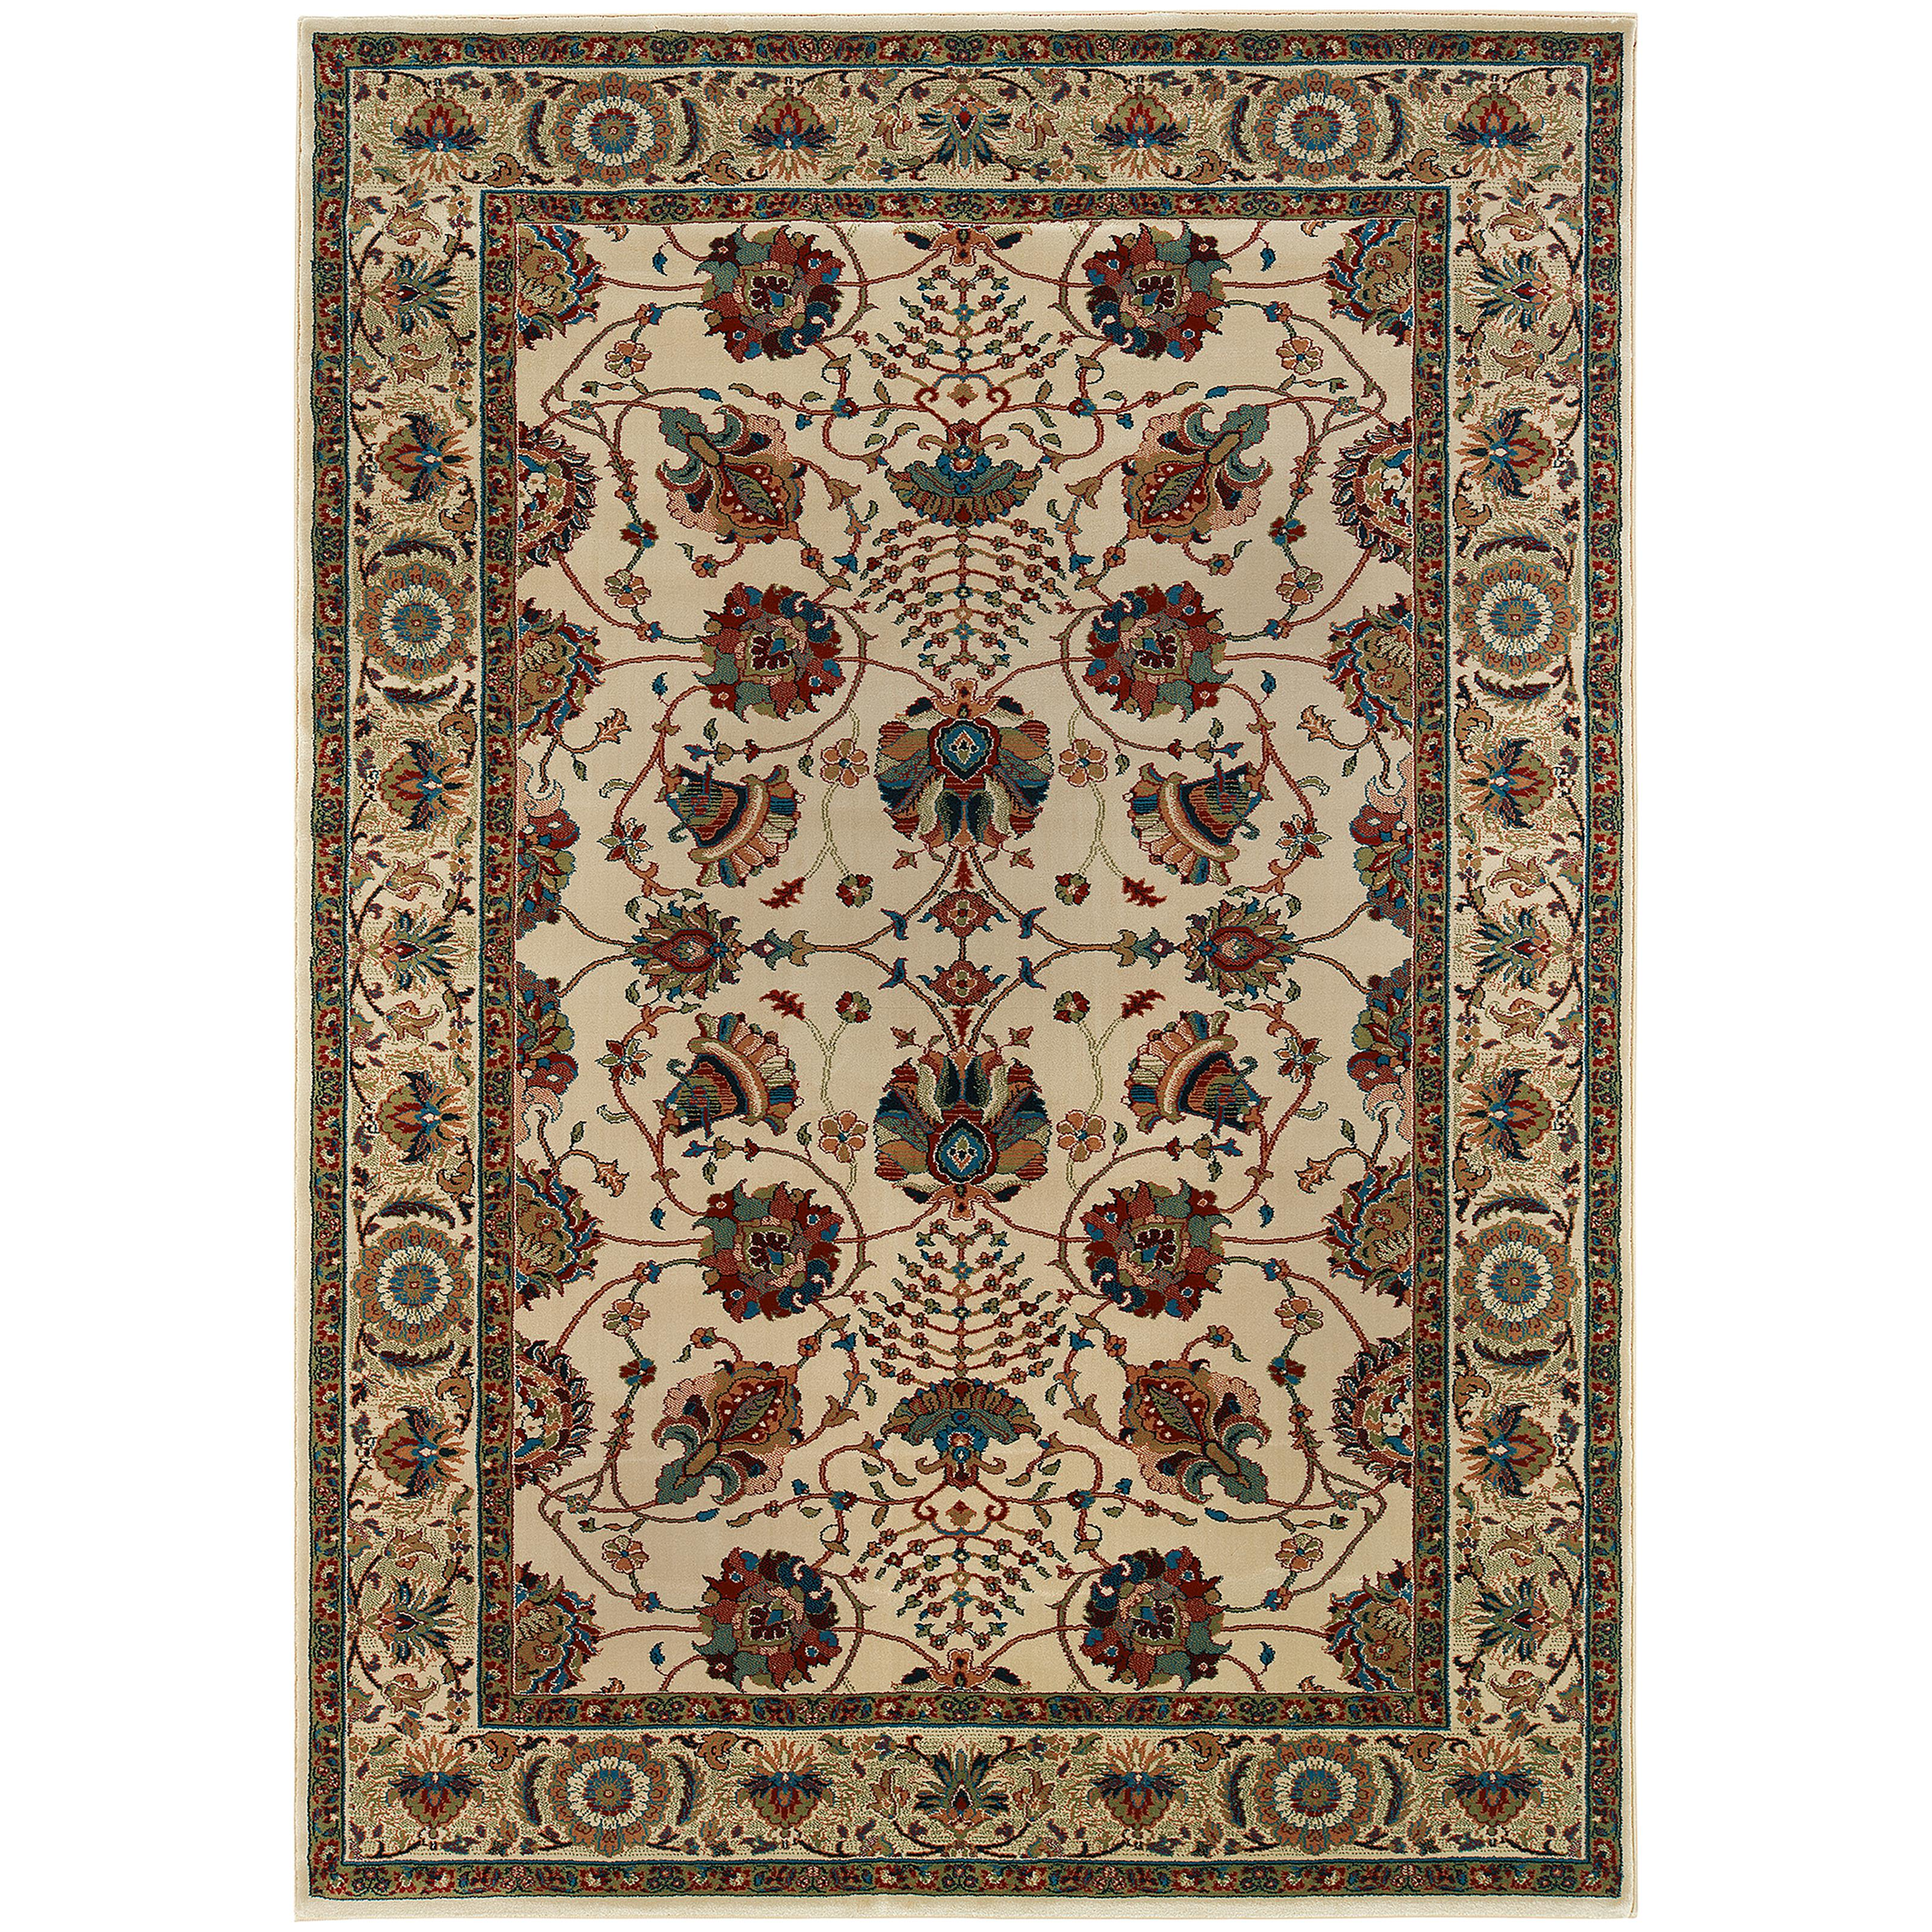 Oriental Weavers Ariana 12' X 15' Rug - Item Number: A431O3360450ST